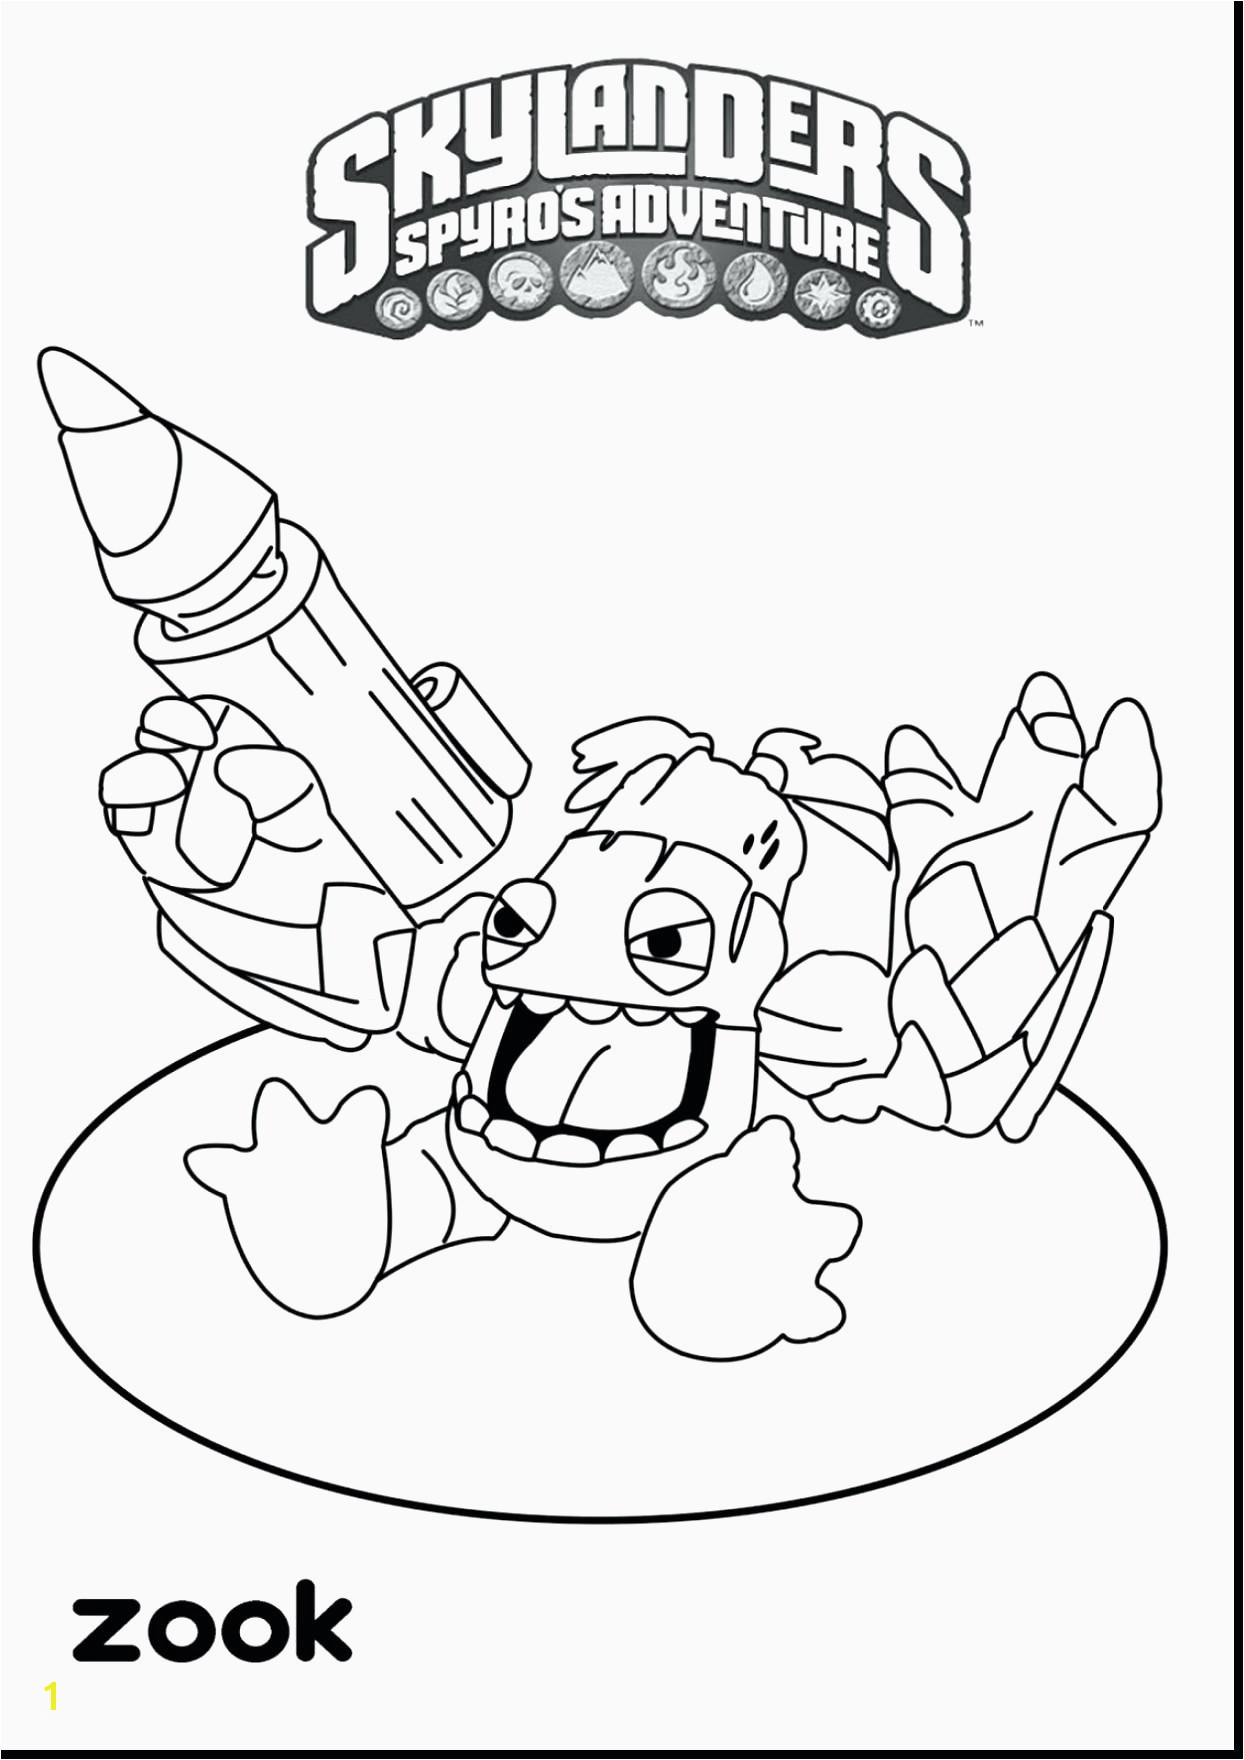 Slugterra Blaster Coloring Pages Coloring Pages Parrots Coloring Pages Coloring Pages